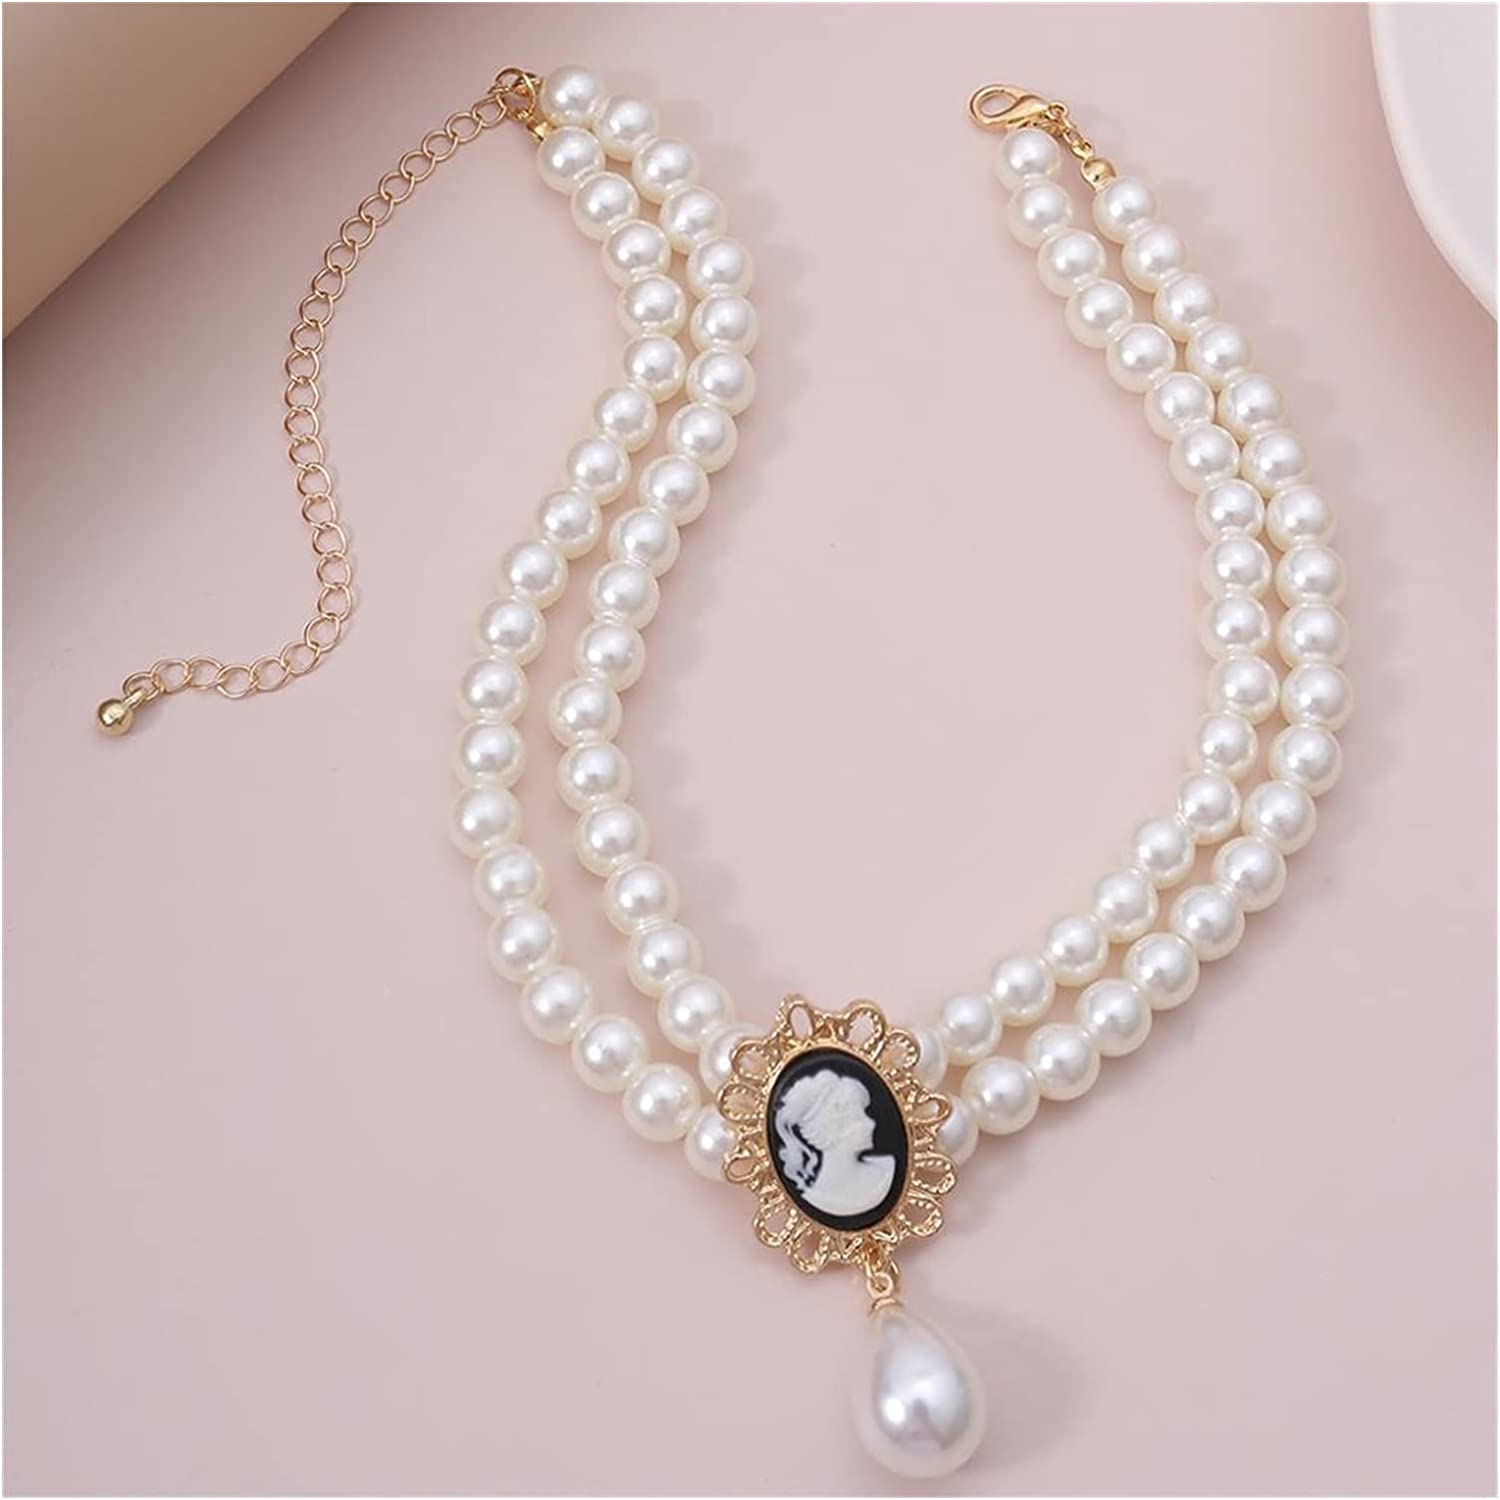 zxb-shop Necklaces Pendant Layered Short Pearl Choker Necklace for Women White Beads Necklace Wedding Jewelry Pearl Choker Collar Gifts Long Necklaces Handmade (Metal Color : C)